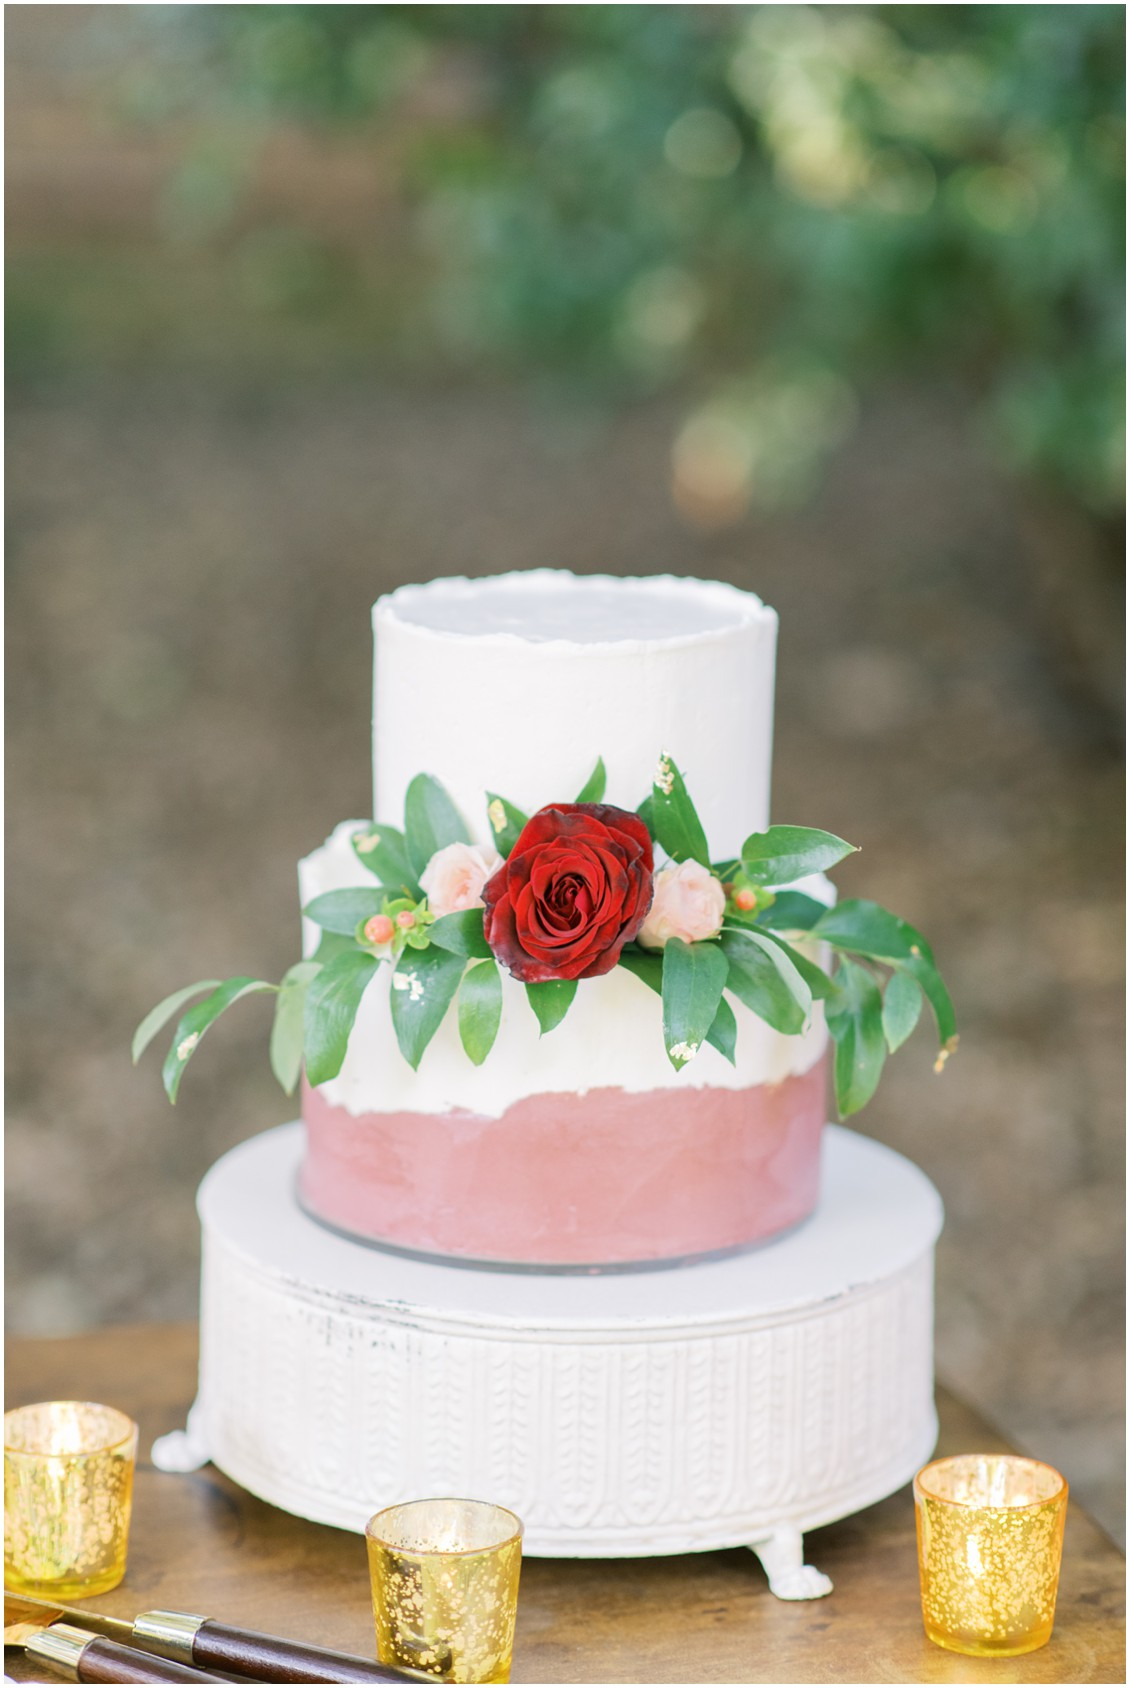 Detail of wedding cake with red rose and cream flowers | My Eastern Shore Wedding | Hannah Belle Events | Eastern Shore Tents and Events